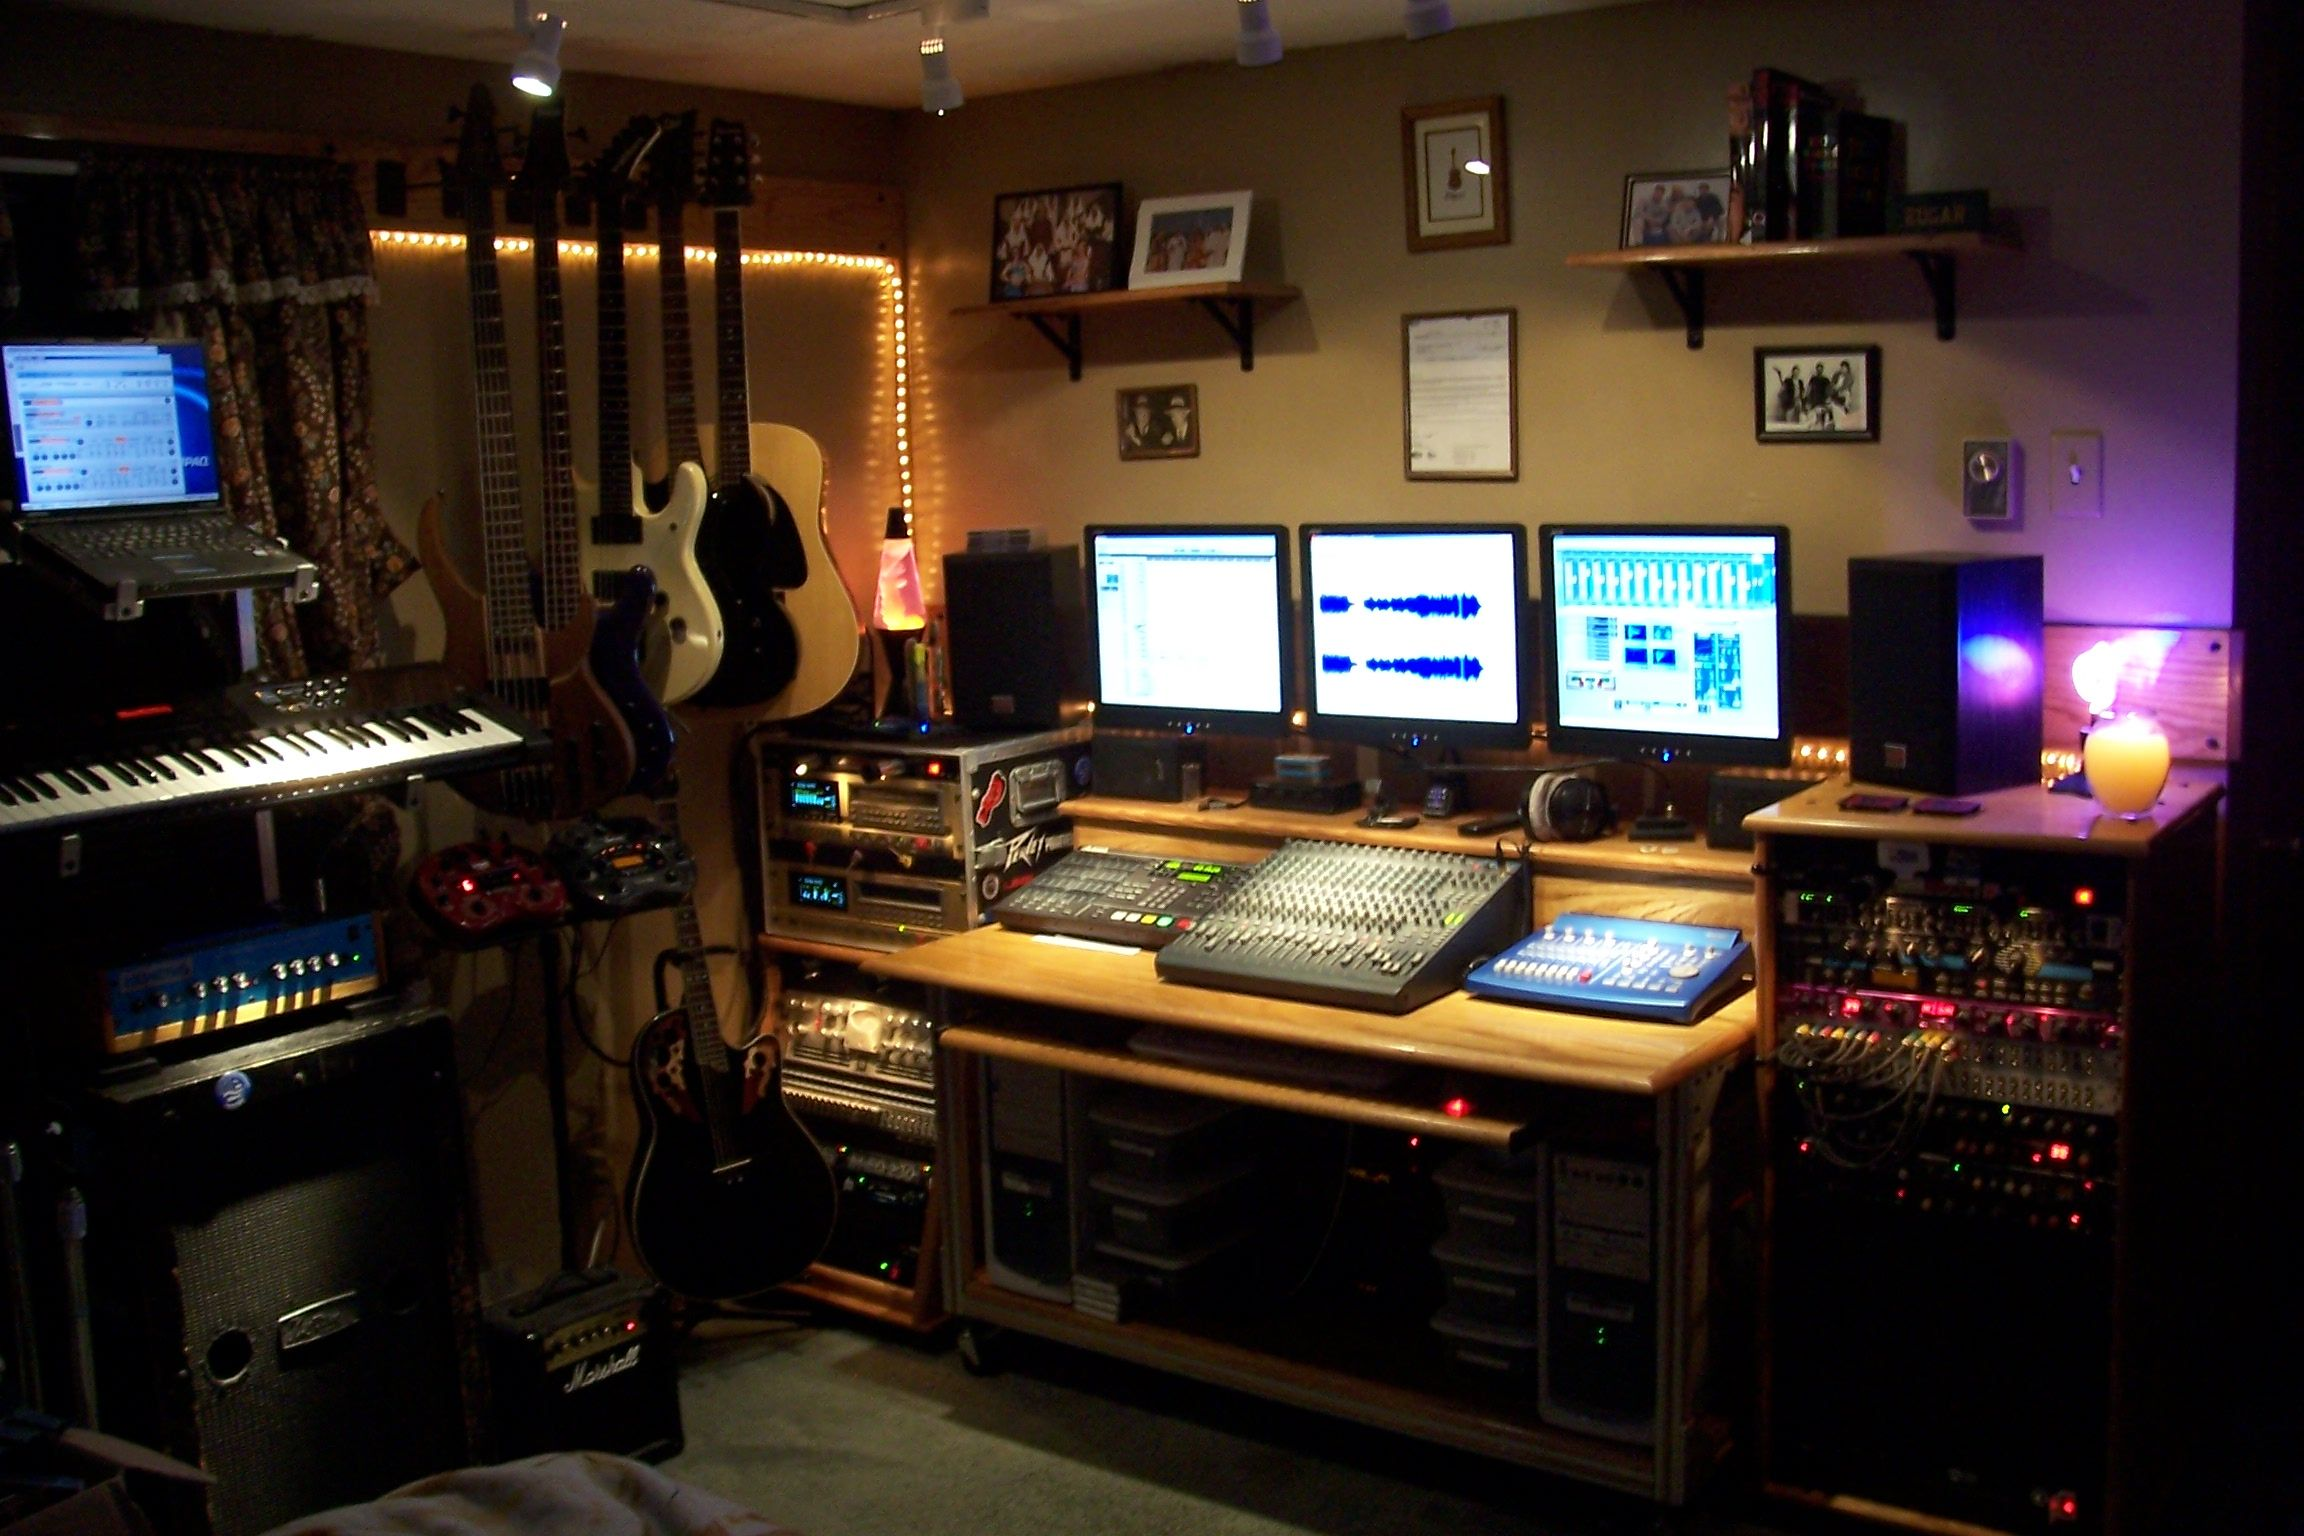 Enjoyable How To Set Up A Simple Recording Studio At Home Music Rooms Largest Home Design Picture Inspirations Pitcheantrous